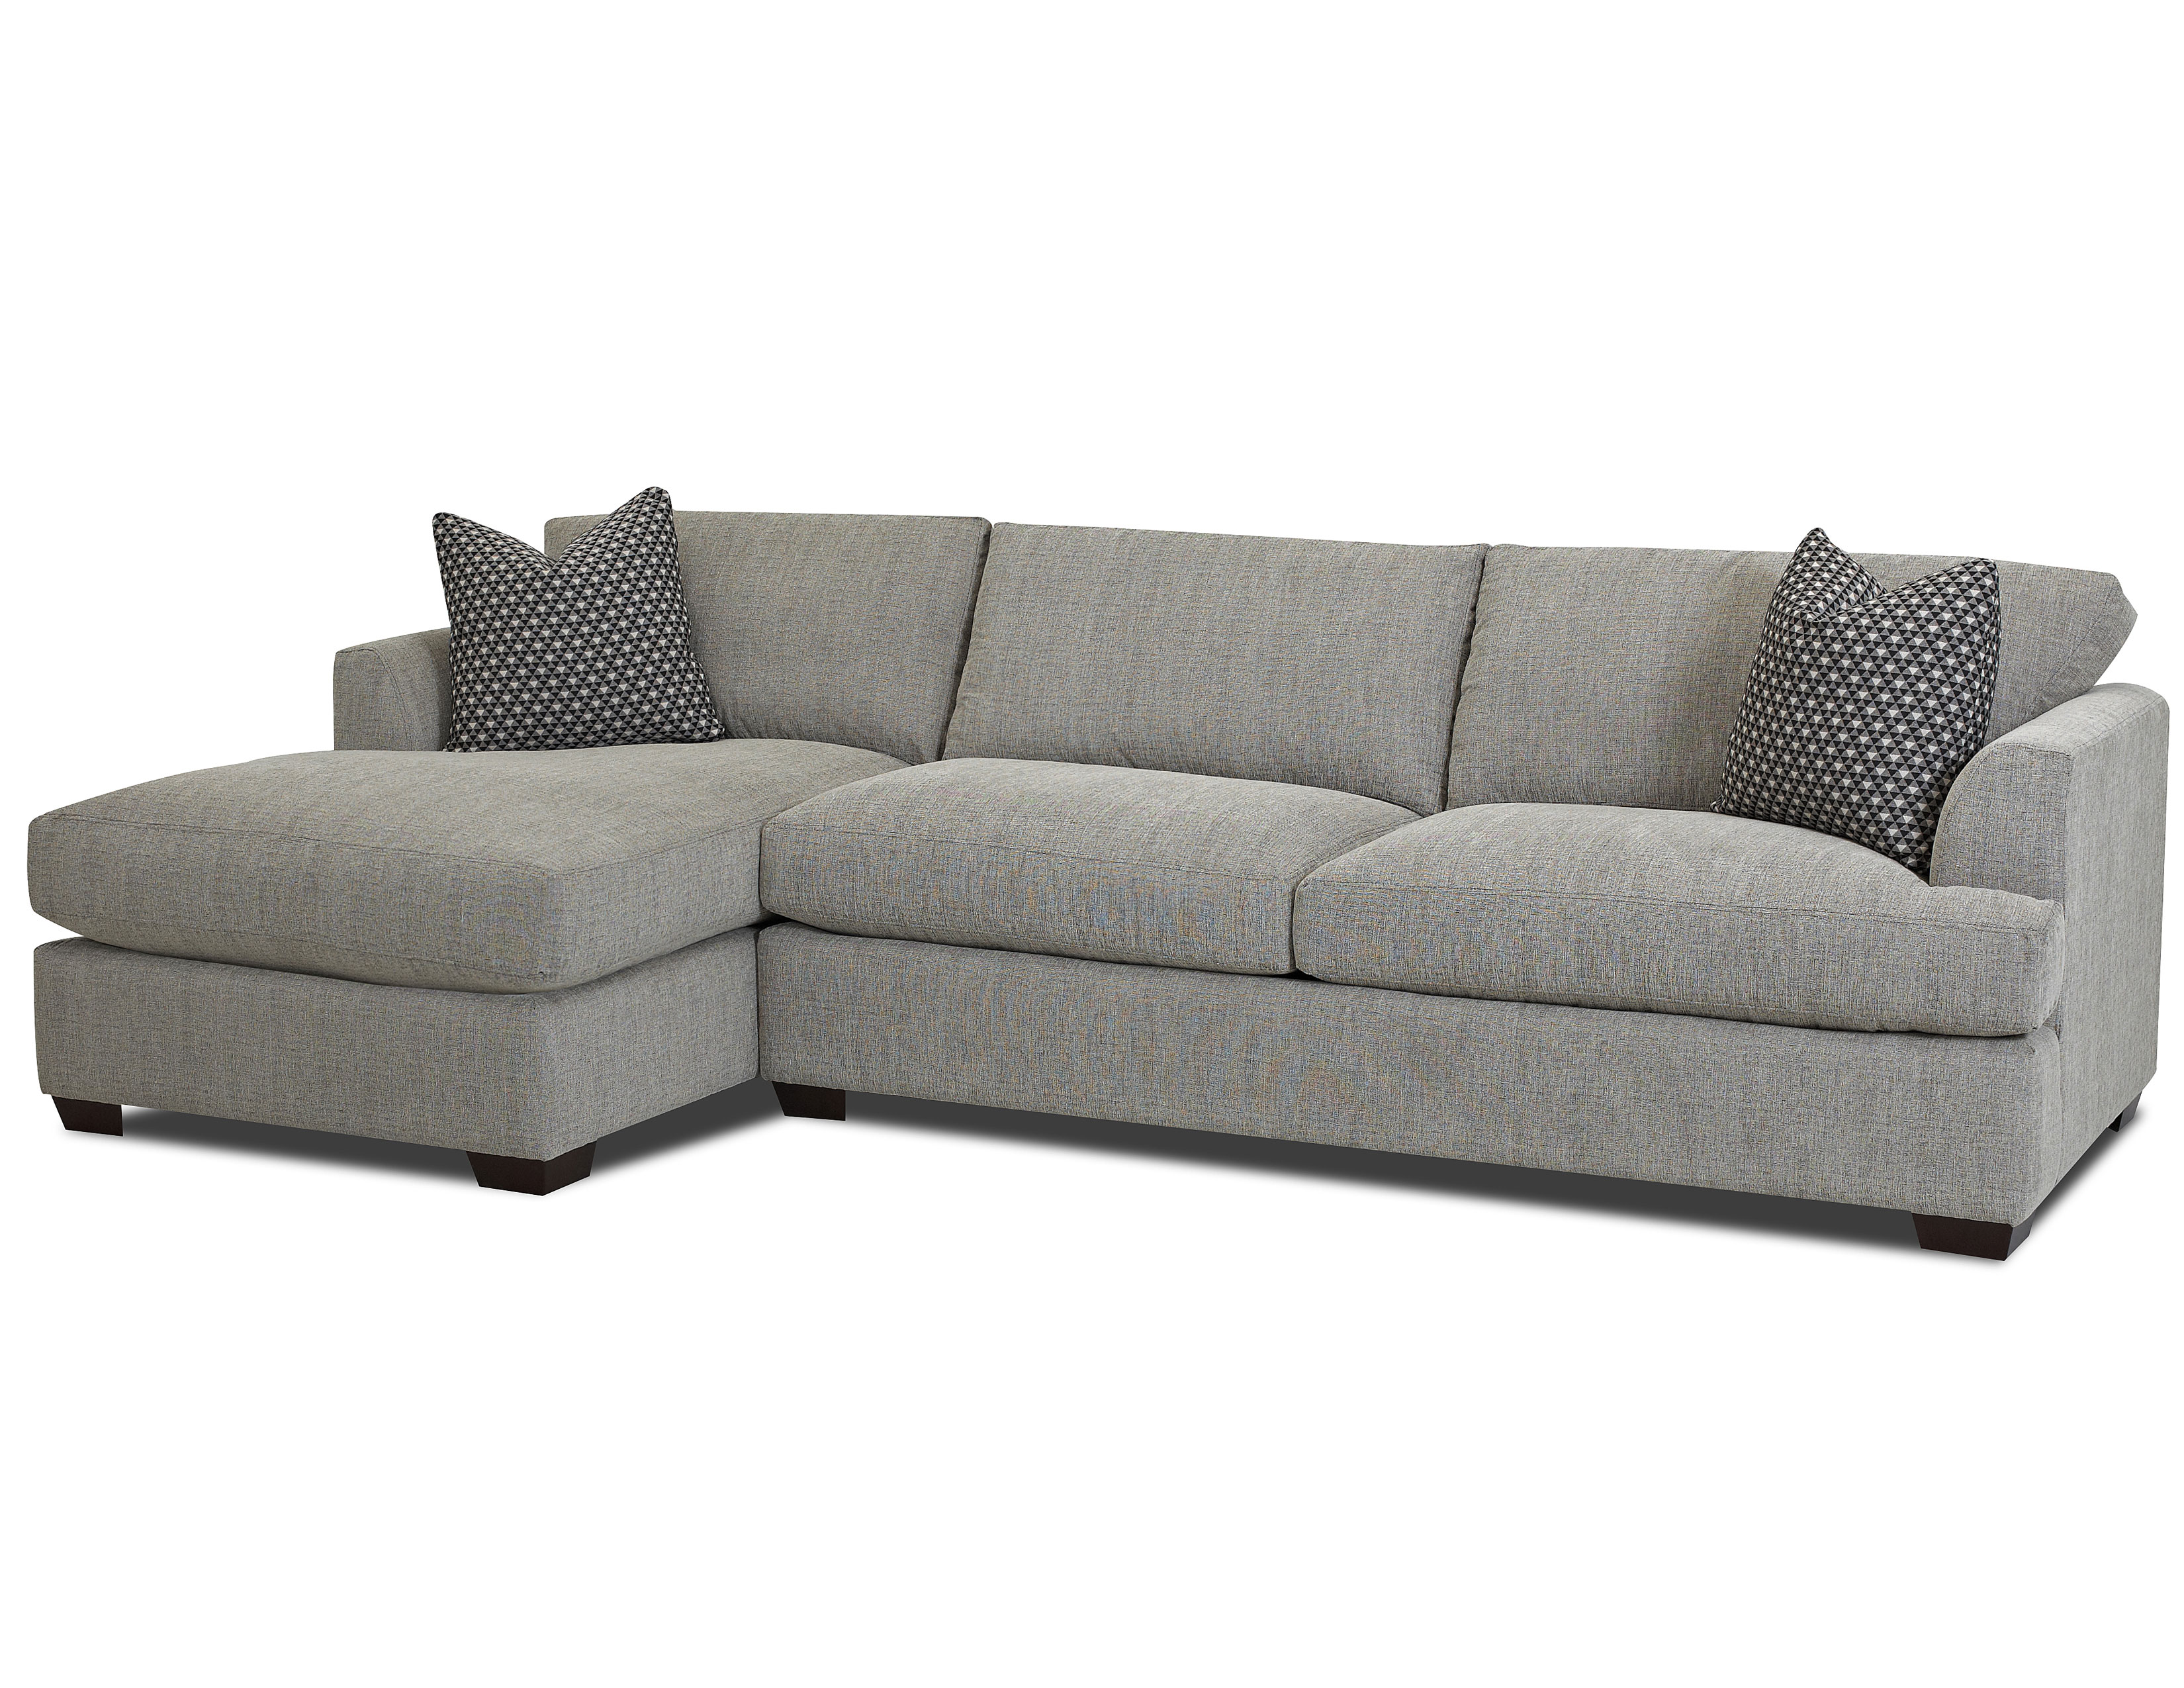 Bentley D92200 Sectional - Hundreds of Fabrics and Colors  sc 1 st  Sofas and Sectionals : bentley sectional - Sectionals, Sofas & Couches